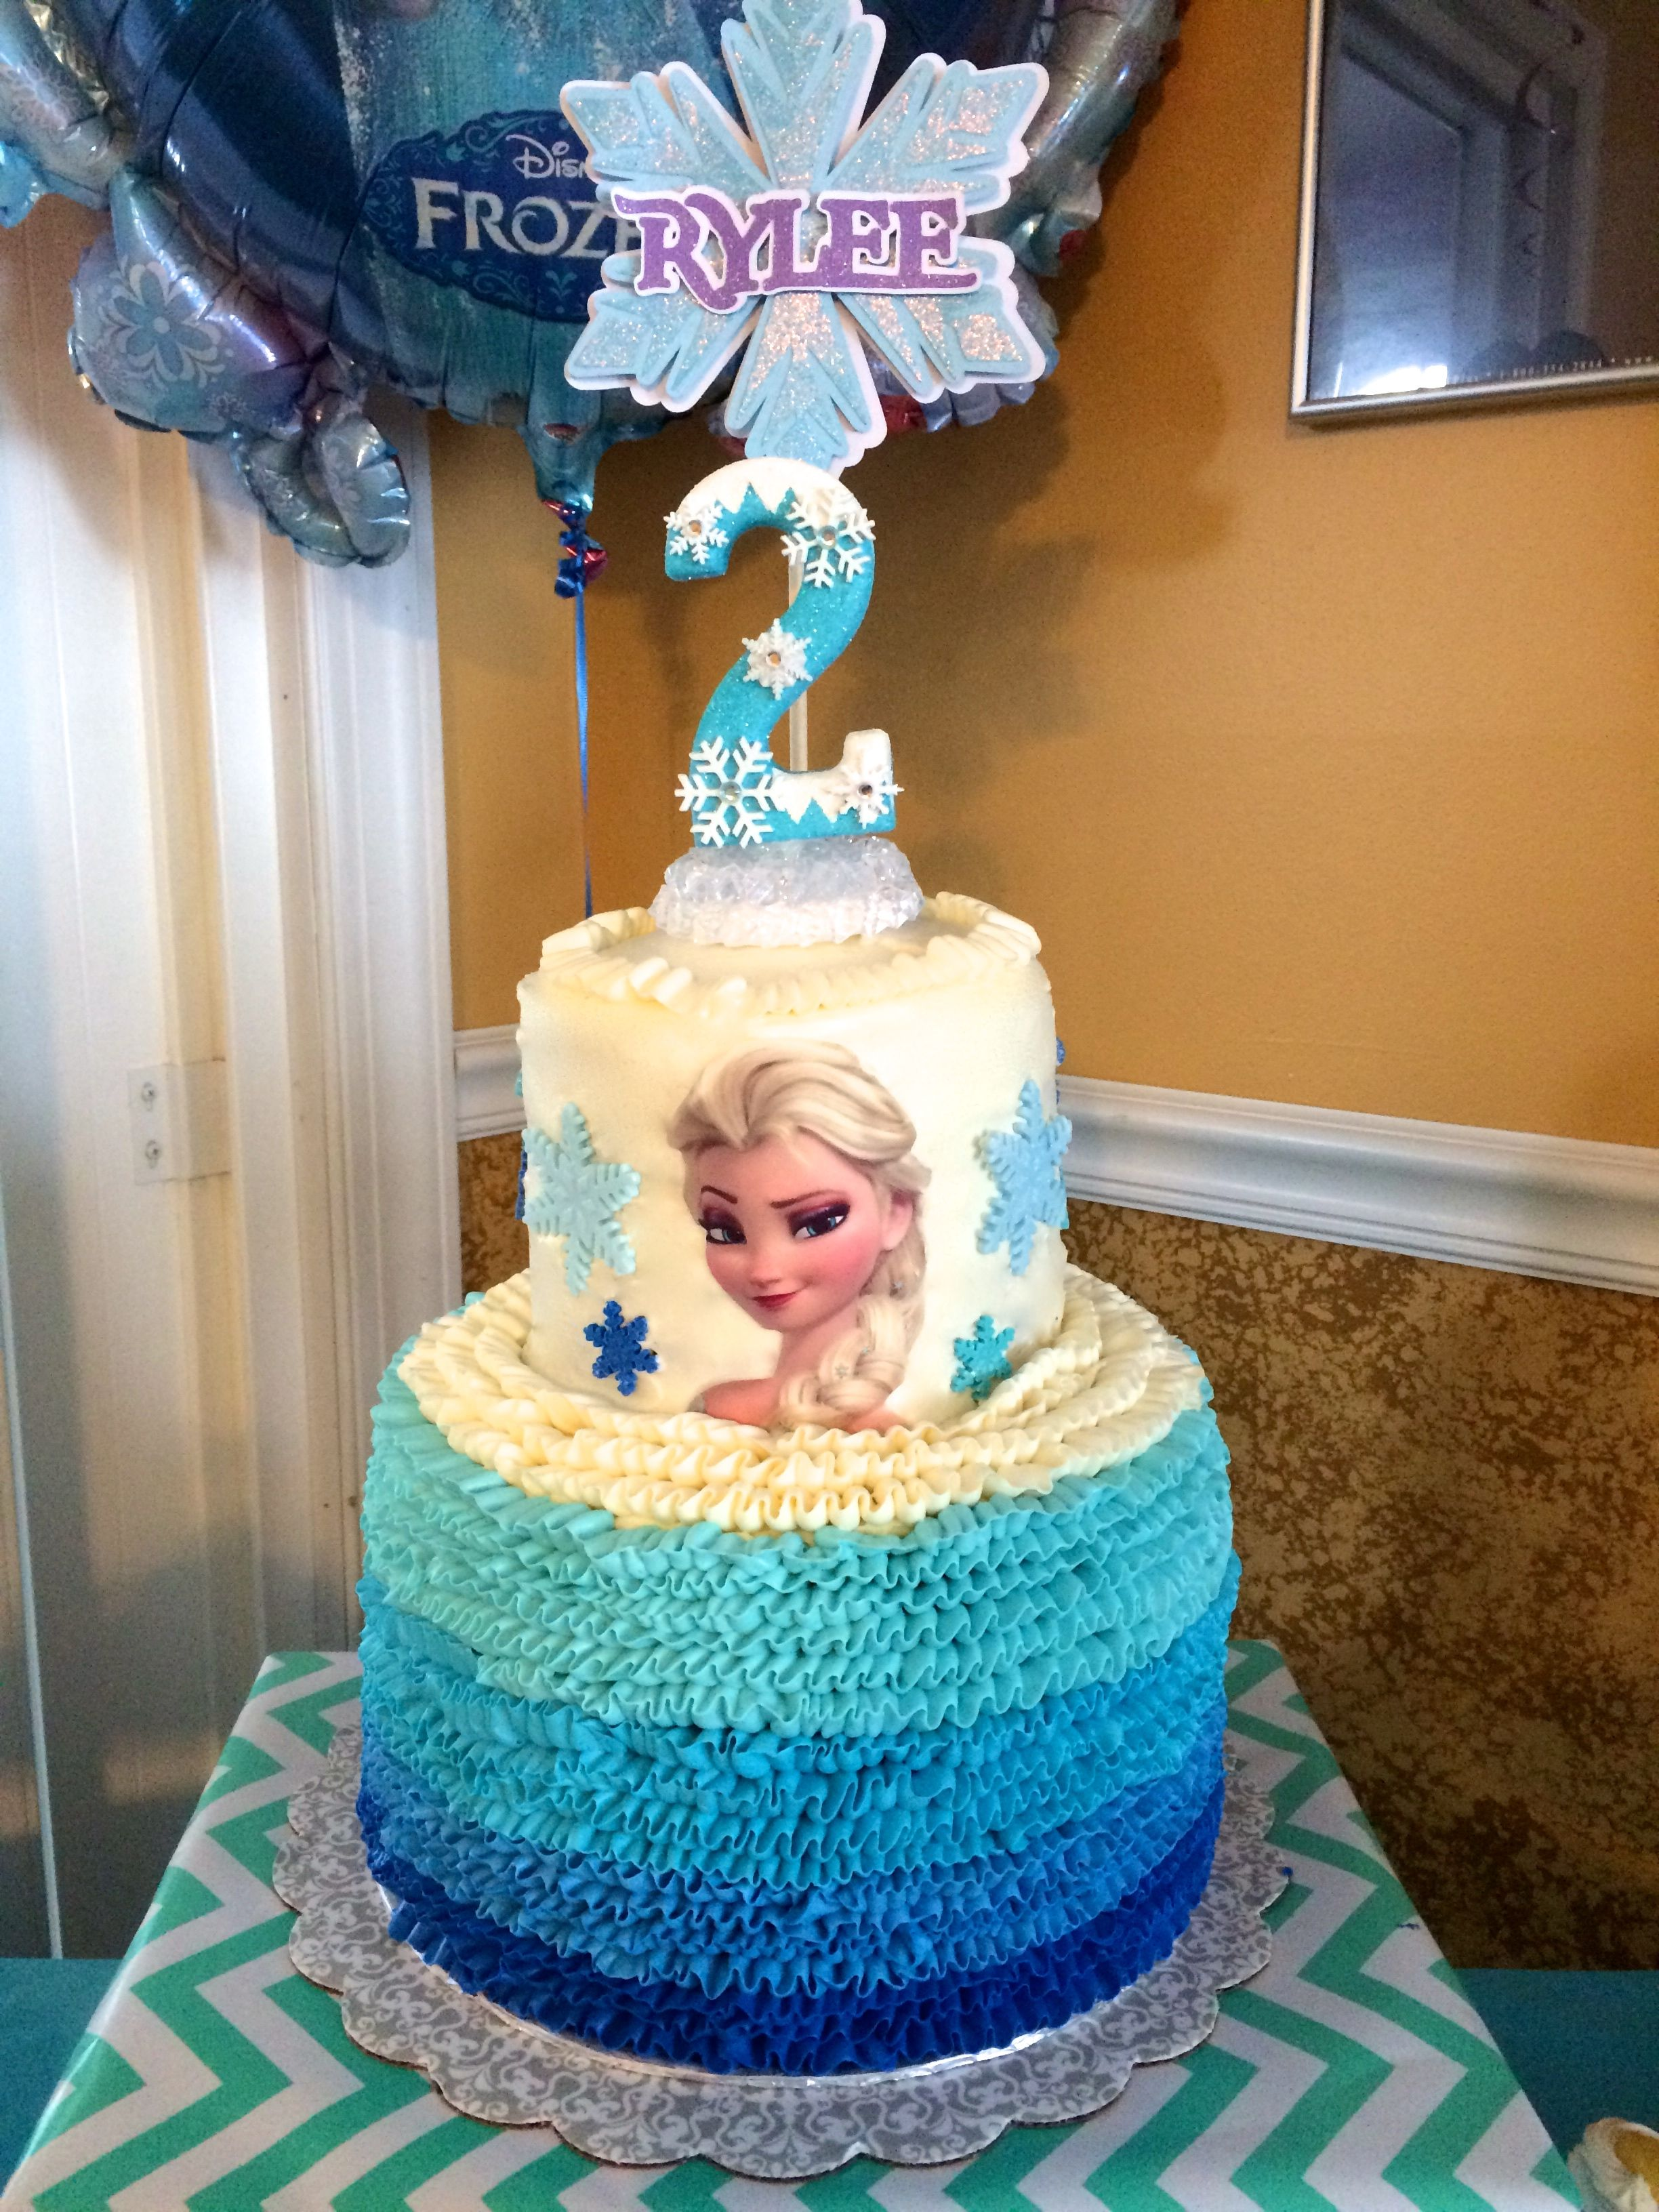 Groovy Heres The Frozen Birthday Cake That I Made For My 2 Year Old Funny Birthday Cards Online Hendilapandamsfinfo